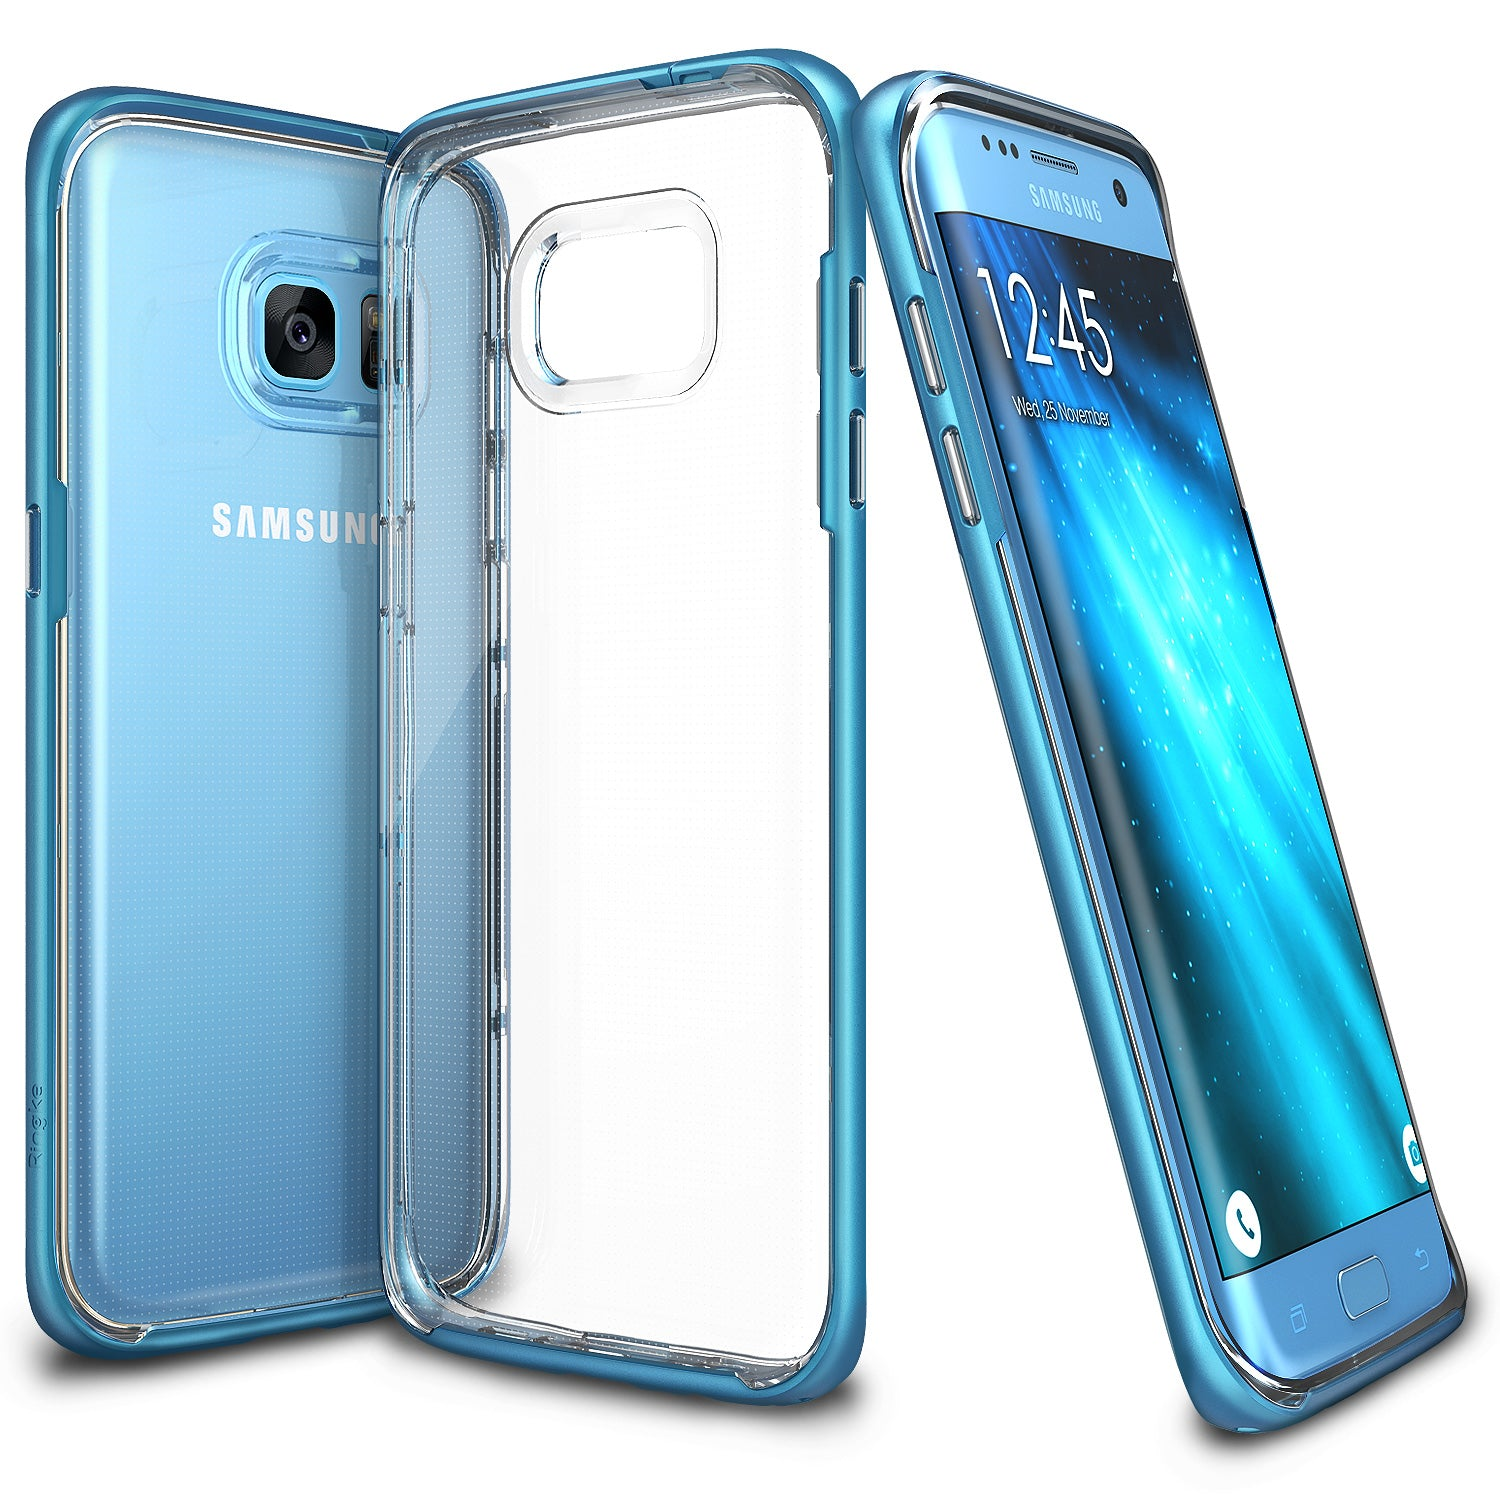 ringke frame clear back advanced bumper protection cover case for galaxy s7 edge ocean blue